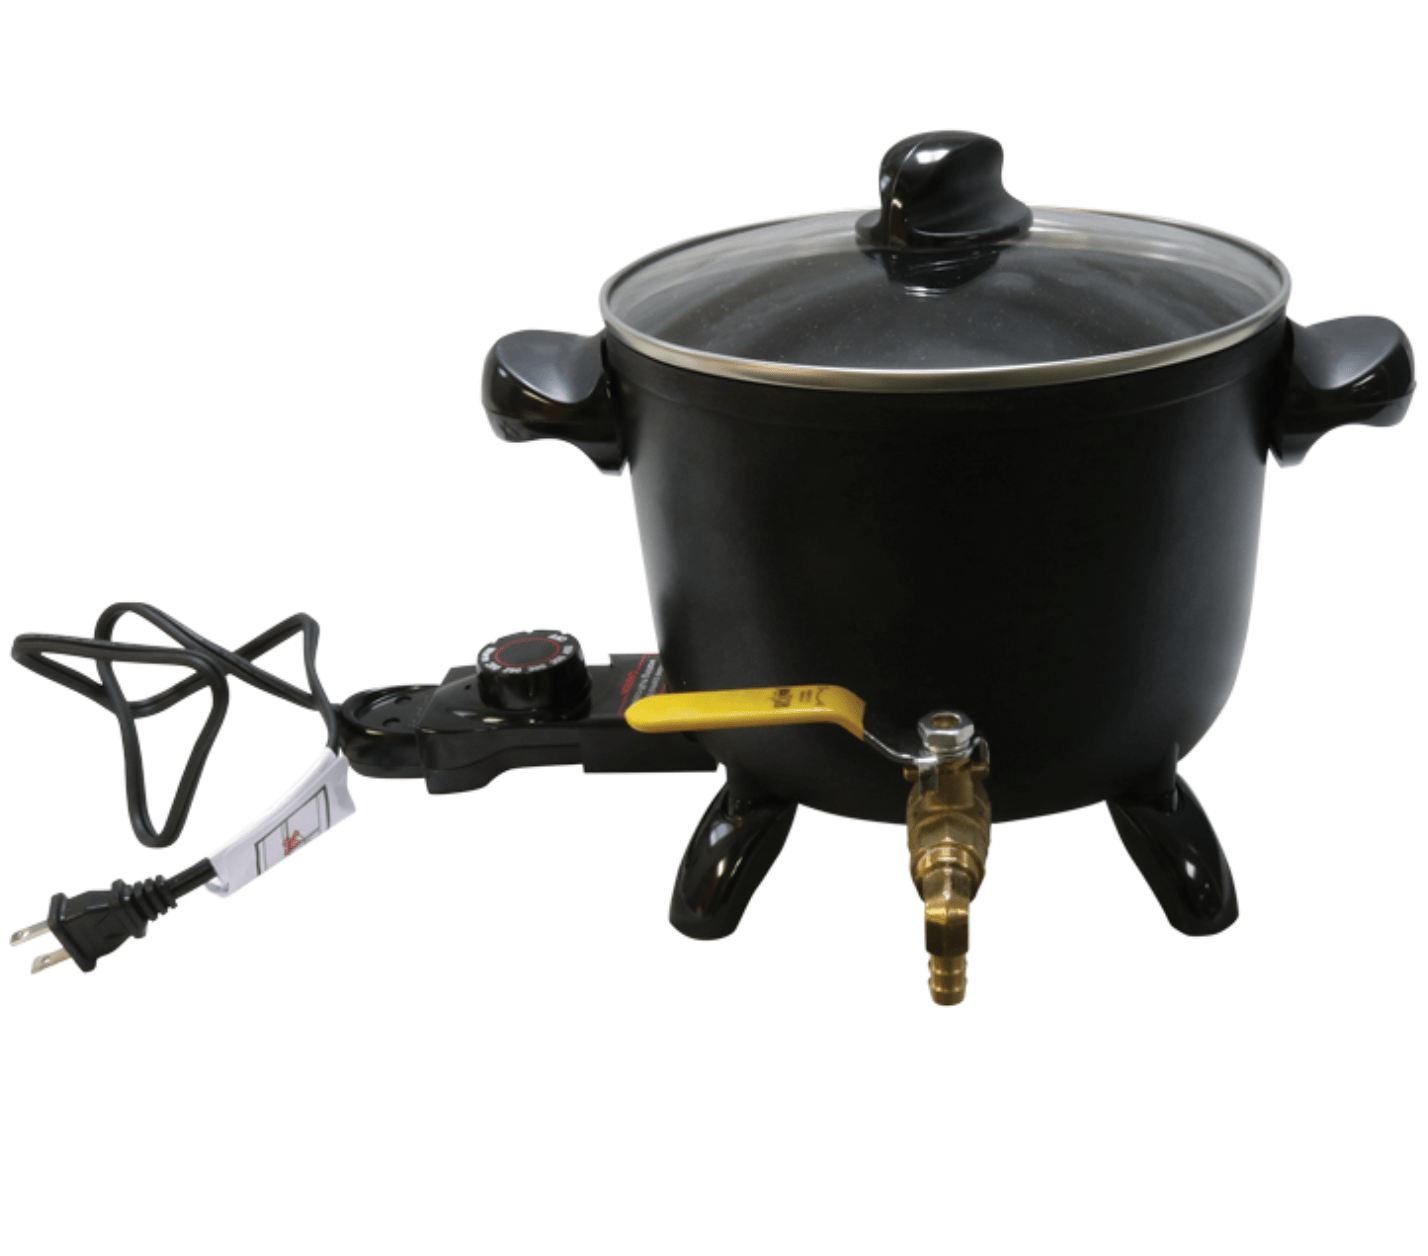 10 Lb Wax Melter Barnyard Bees After you turn it on, you may need to set. 10 lb wax melter